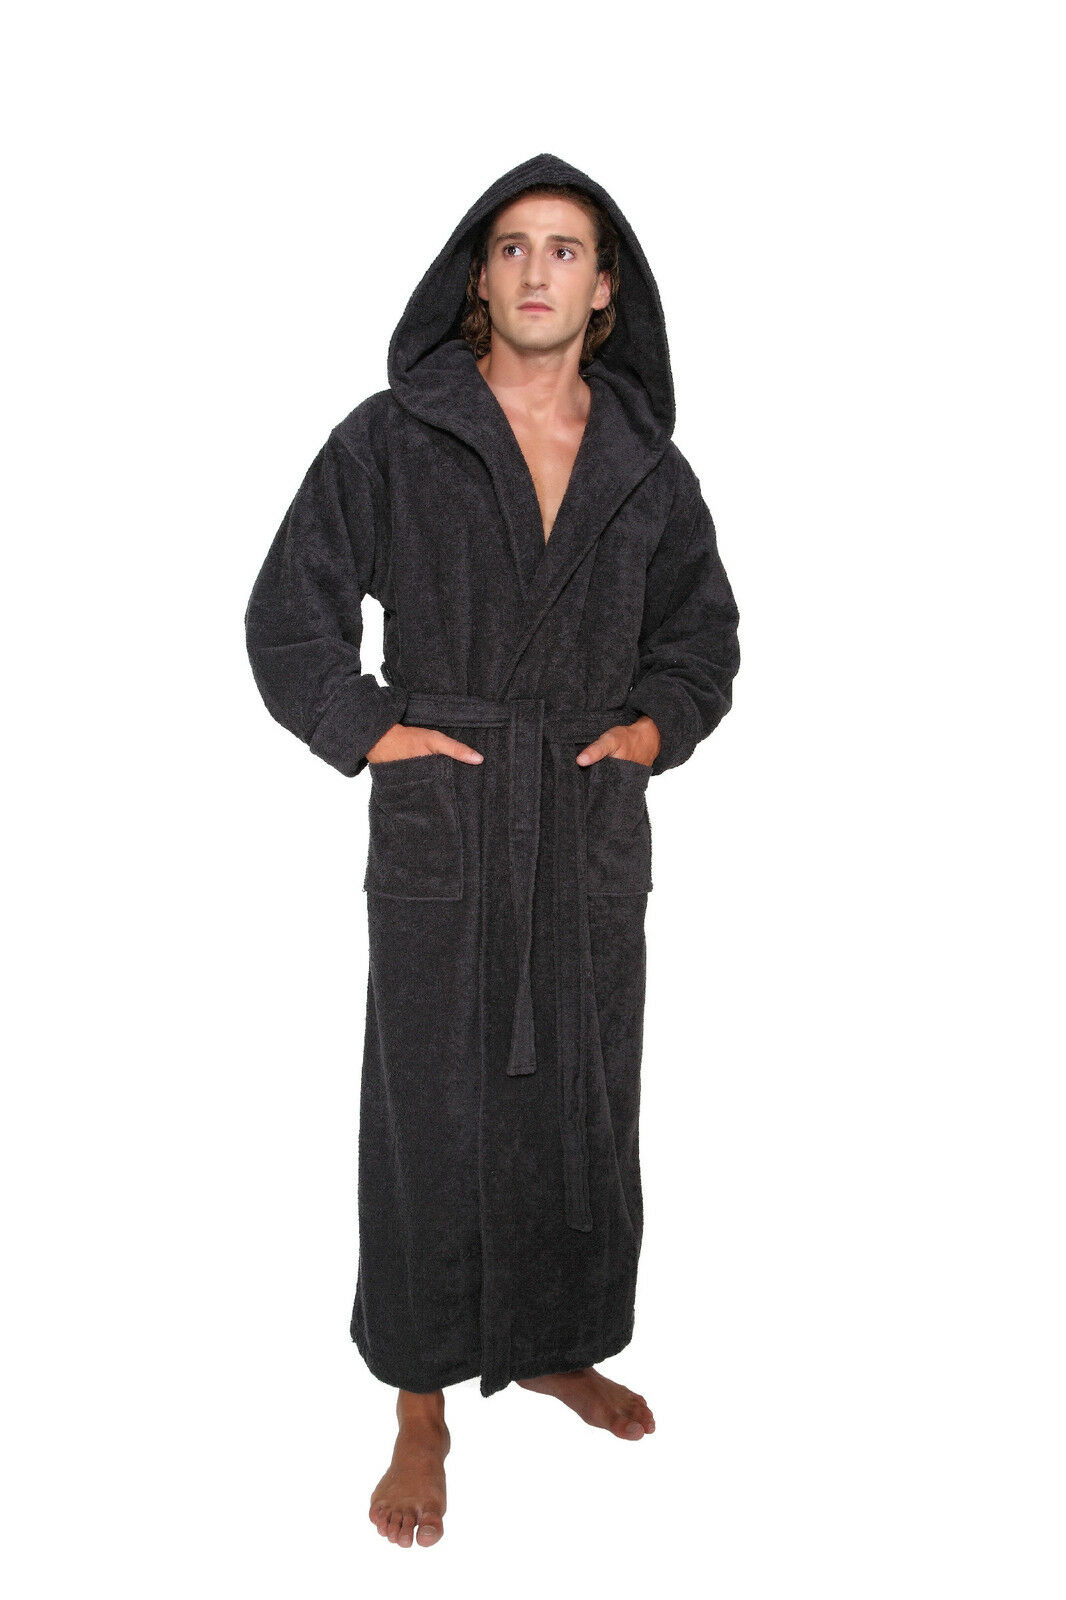 Hooded Bathrobe Mens Turkish Cotton Terry Spa Robe With Hood